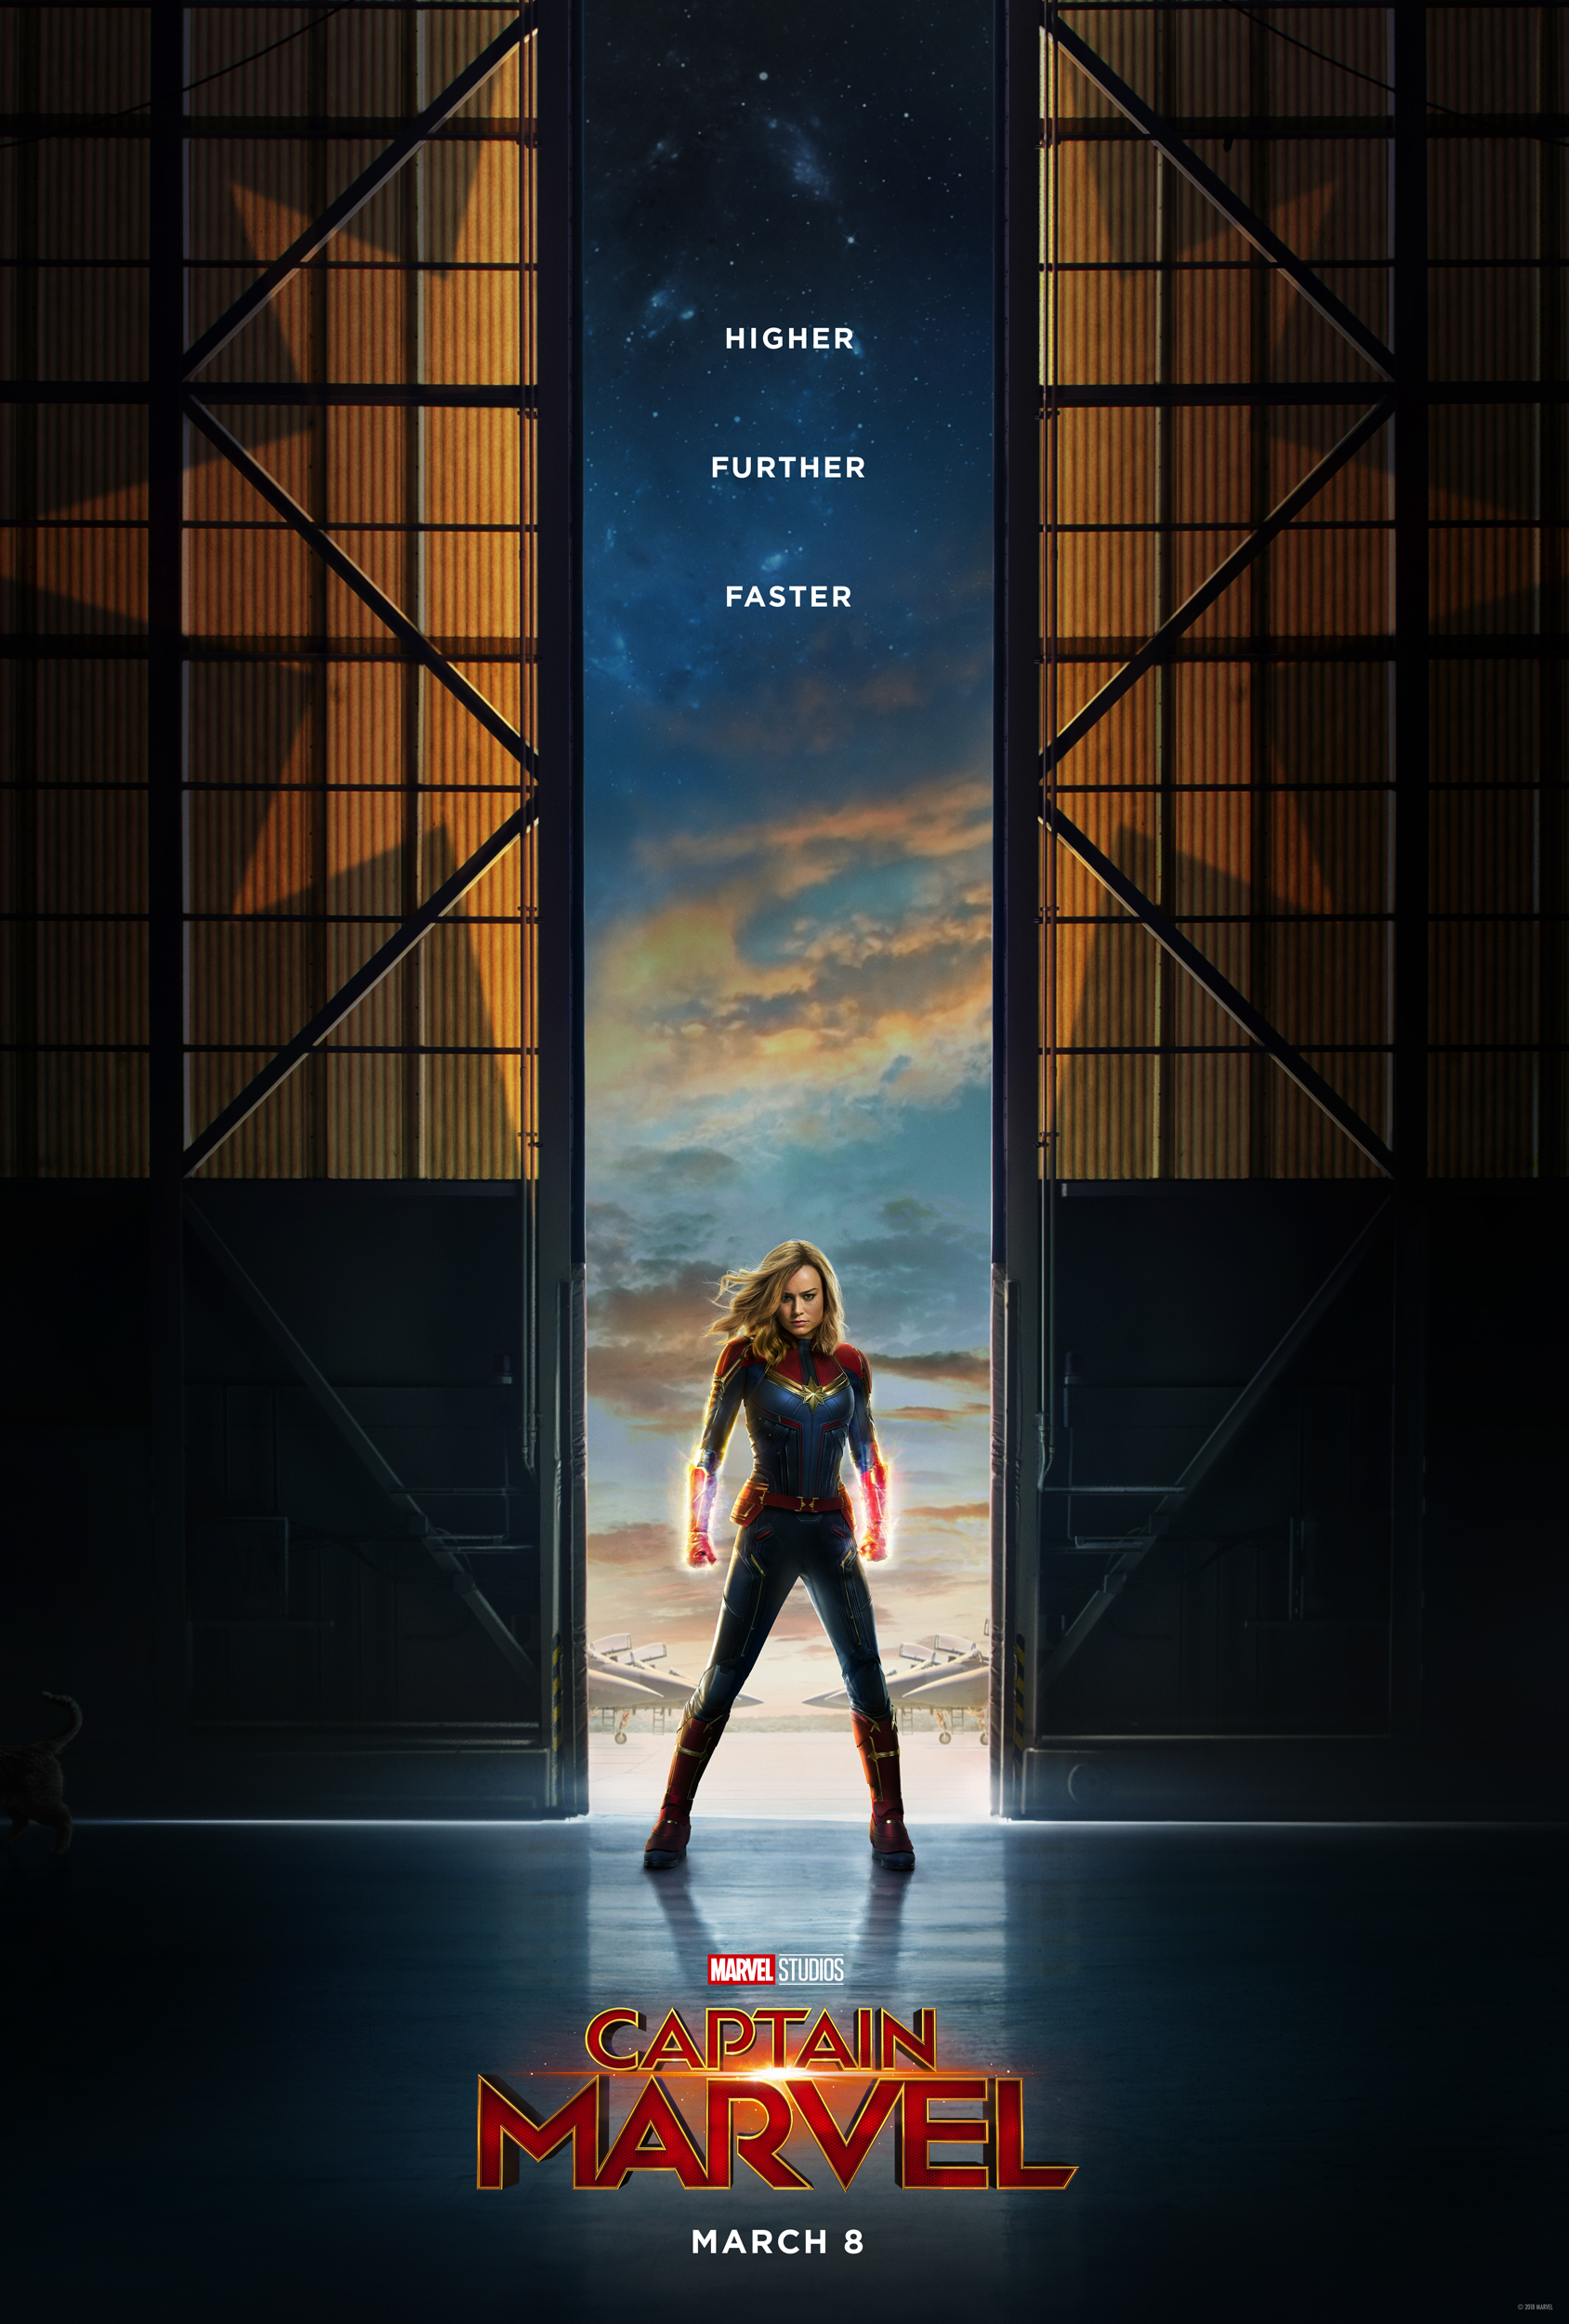 #CaptainMarvel NEW Trailer Out Today! In theaters on March 8th, 2019